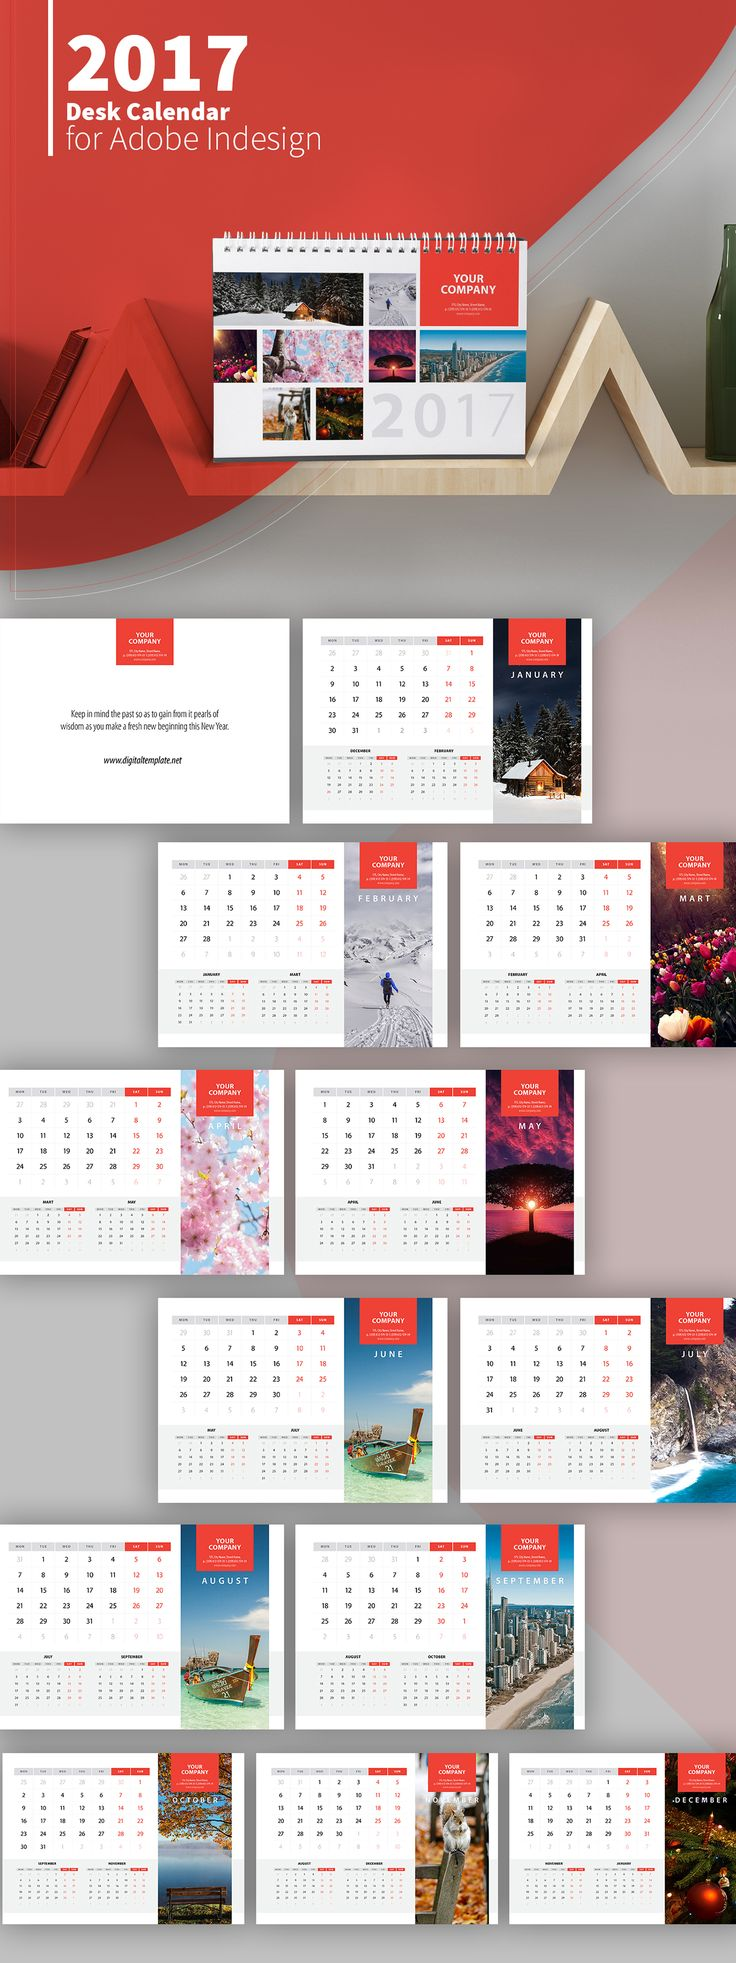 Best Calendar Design : Best calendar design ideas on pinterest